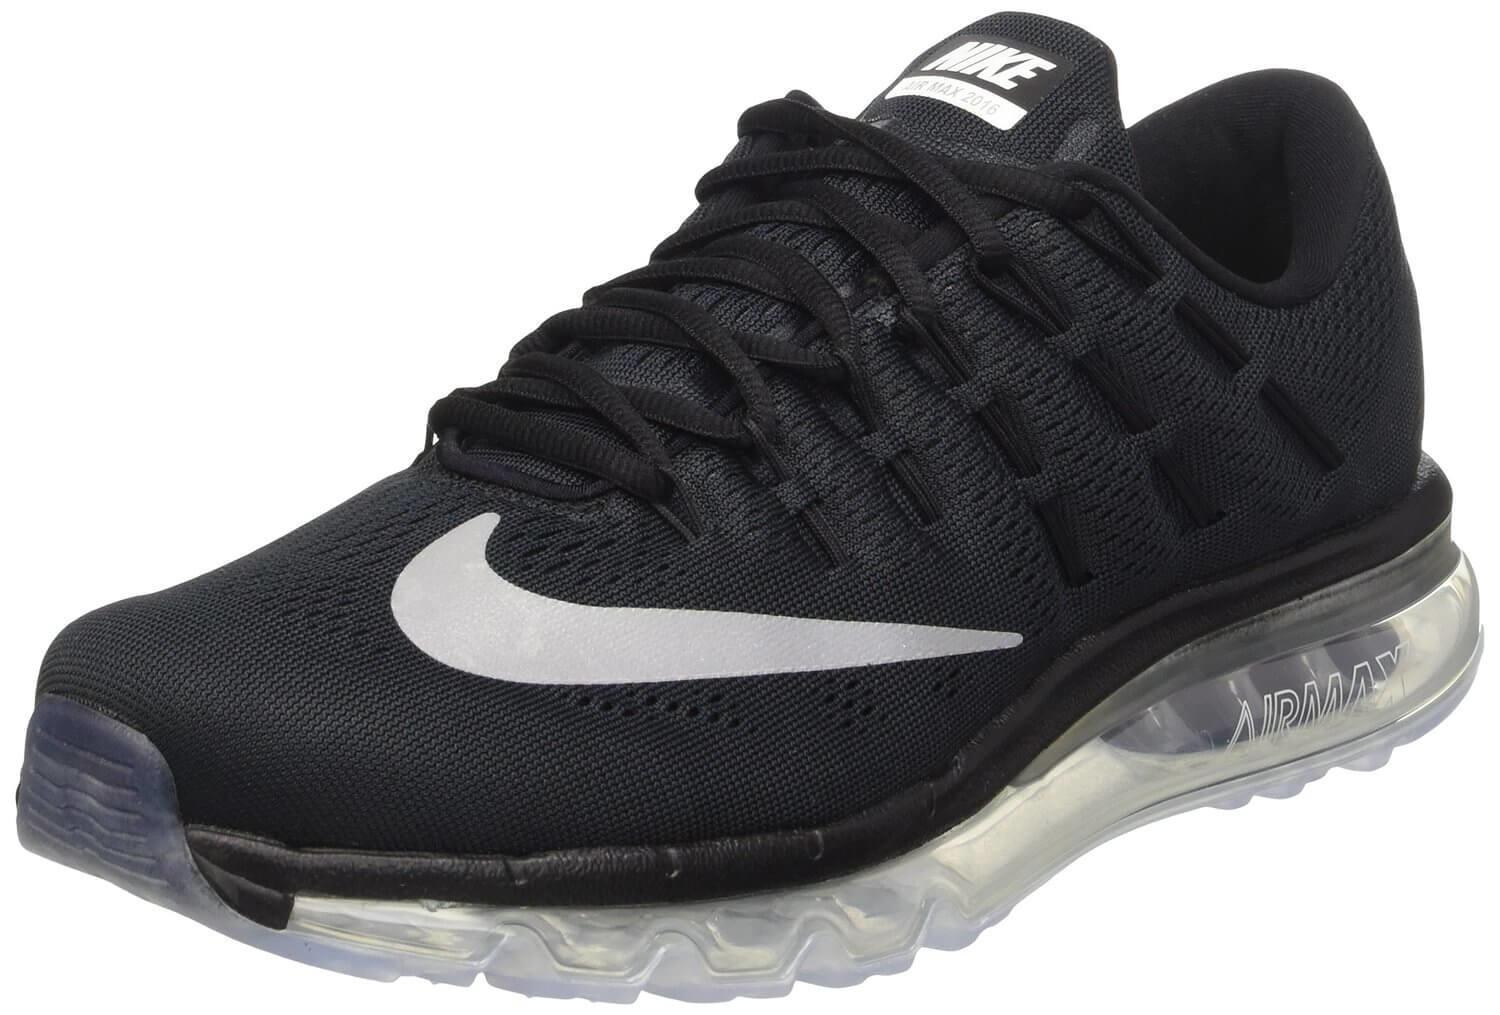 fa763bdc7 Nike Air Max 2016ed   Rated for Quality - in May 2019